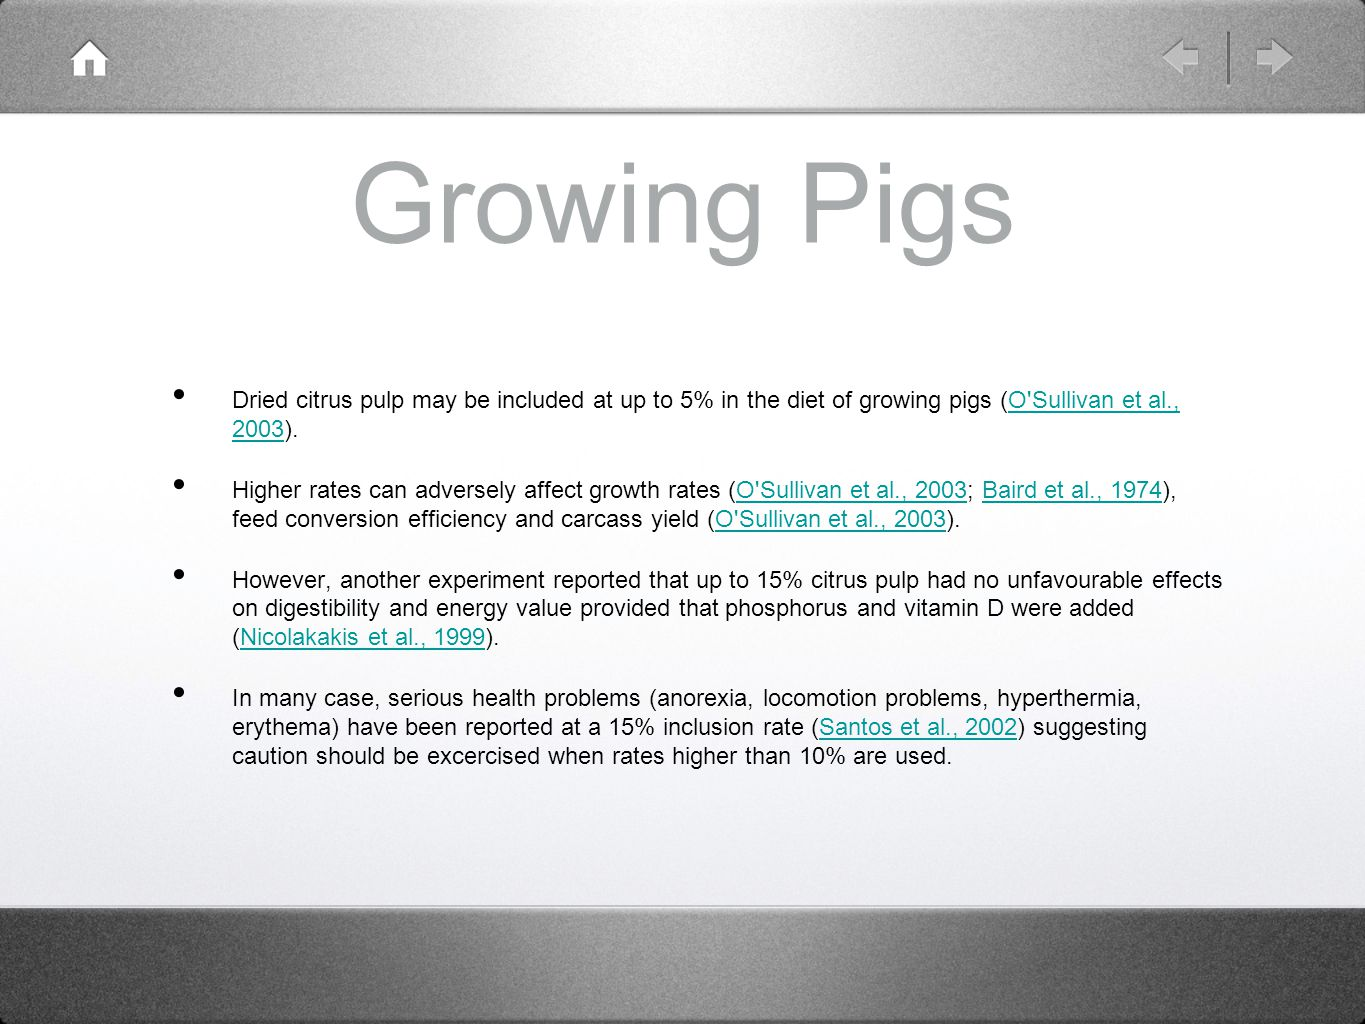 Growing Pigs Dried citrus pulp may be included at up to 5% in the diet of growing pigs (O Sullivan et al., 2003).